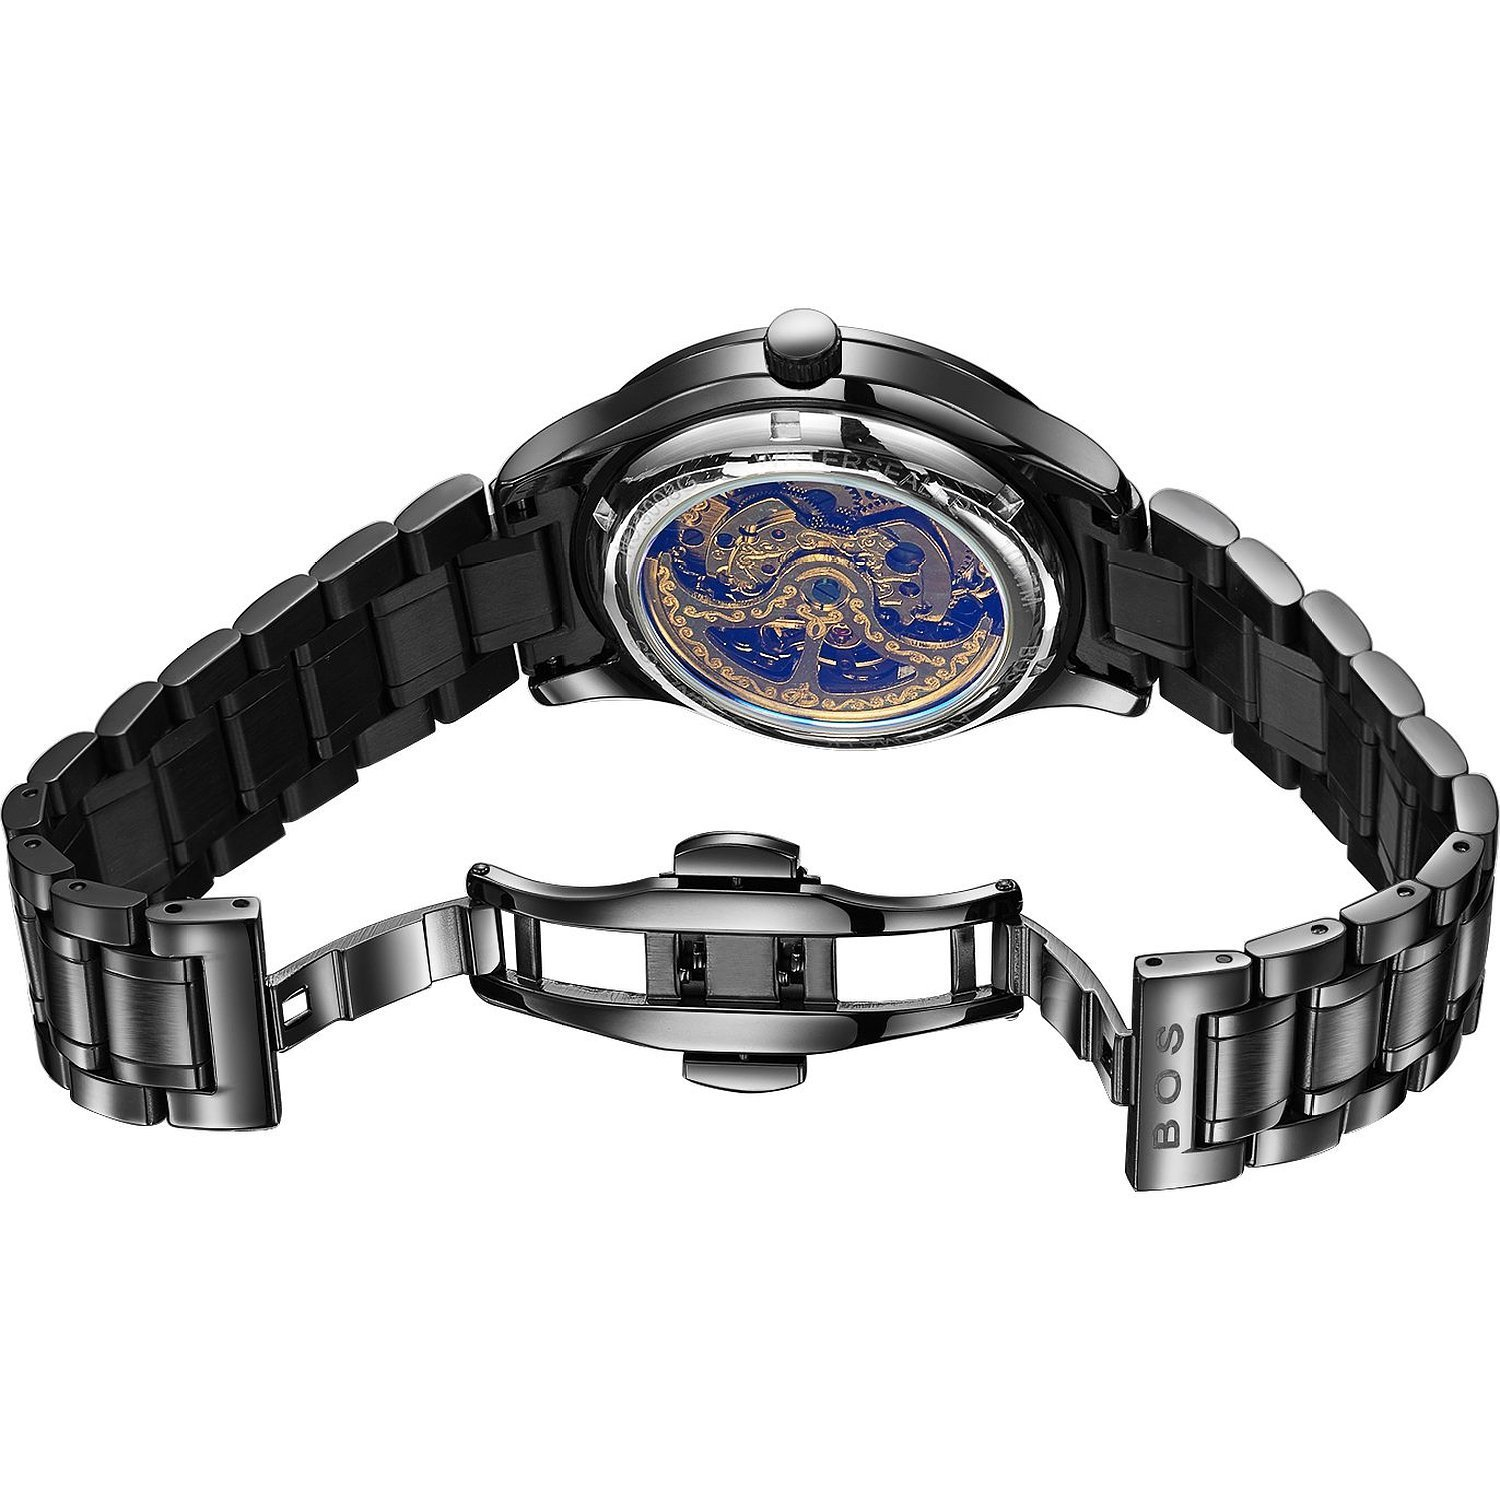 1c385cb97 Amazon.com: BOS Men's Automatic self-Wind Mechanical Pointer Skeleton Watch  Black Dial Stainless Steel Band 9008: Angela Von Bos: Watches